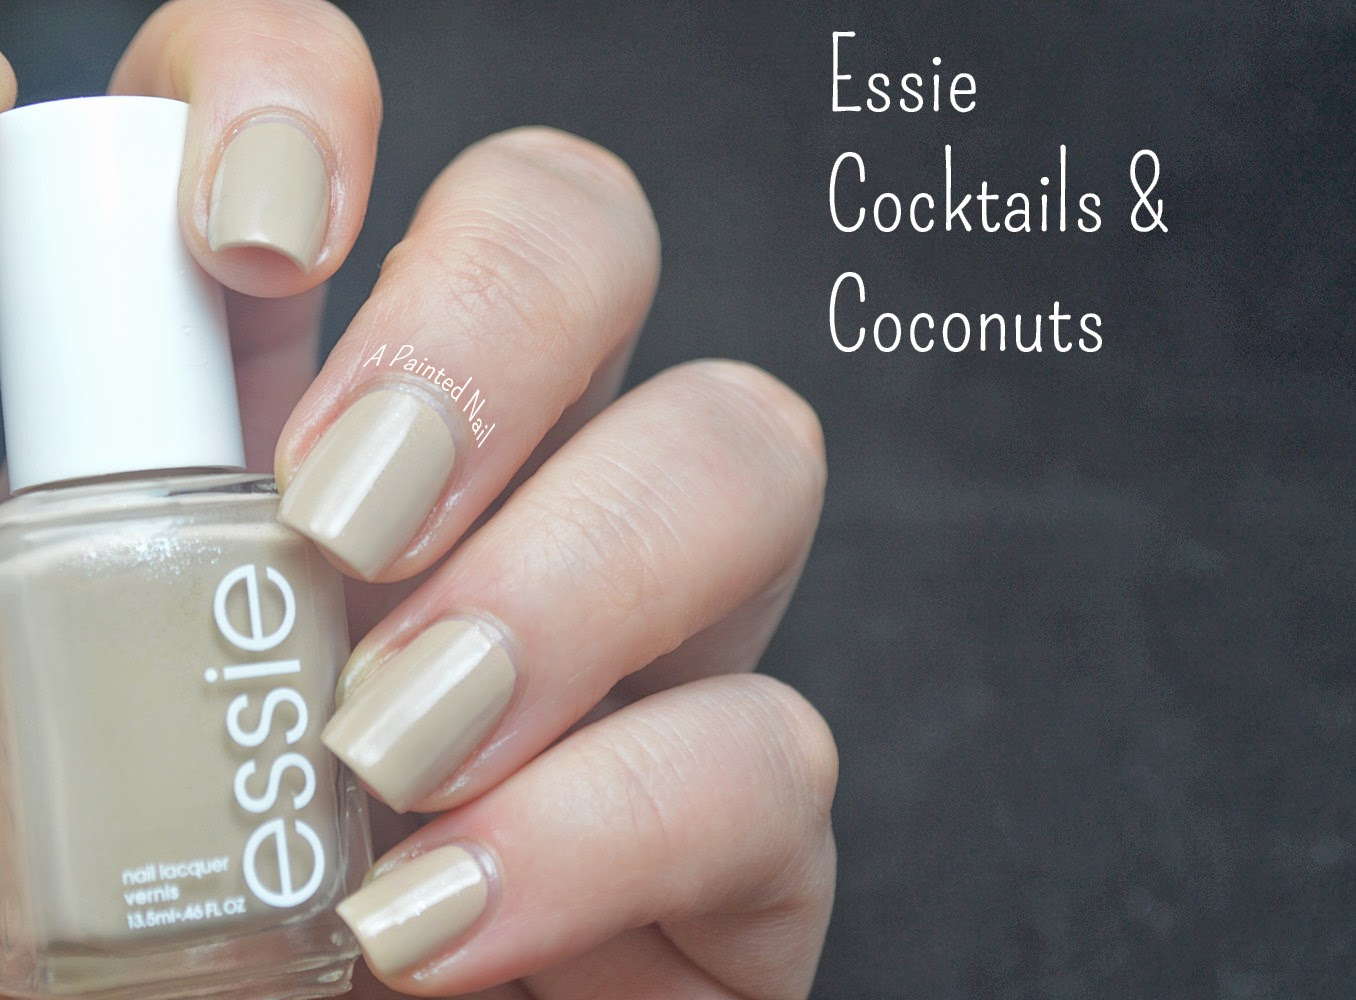 A Painted Nail: Essie Cocktails And Coconuts - Spring/Summer Color Trend